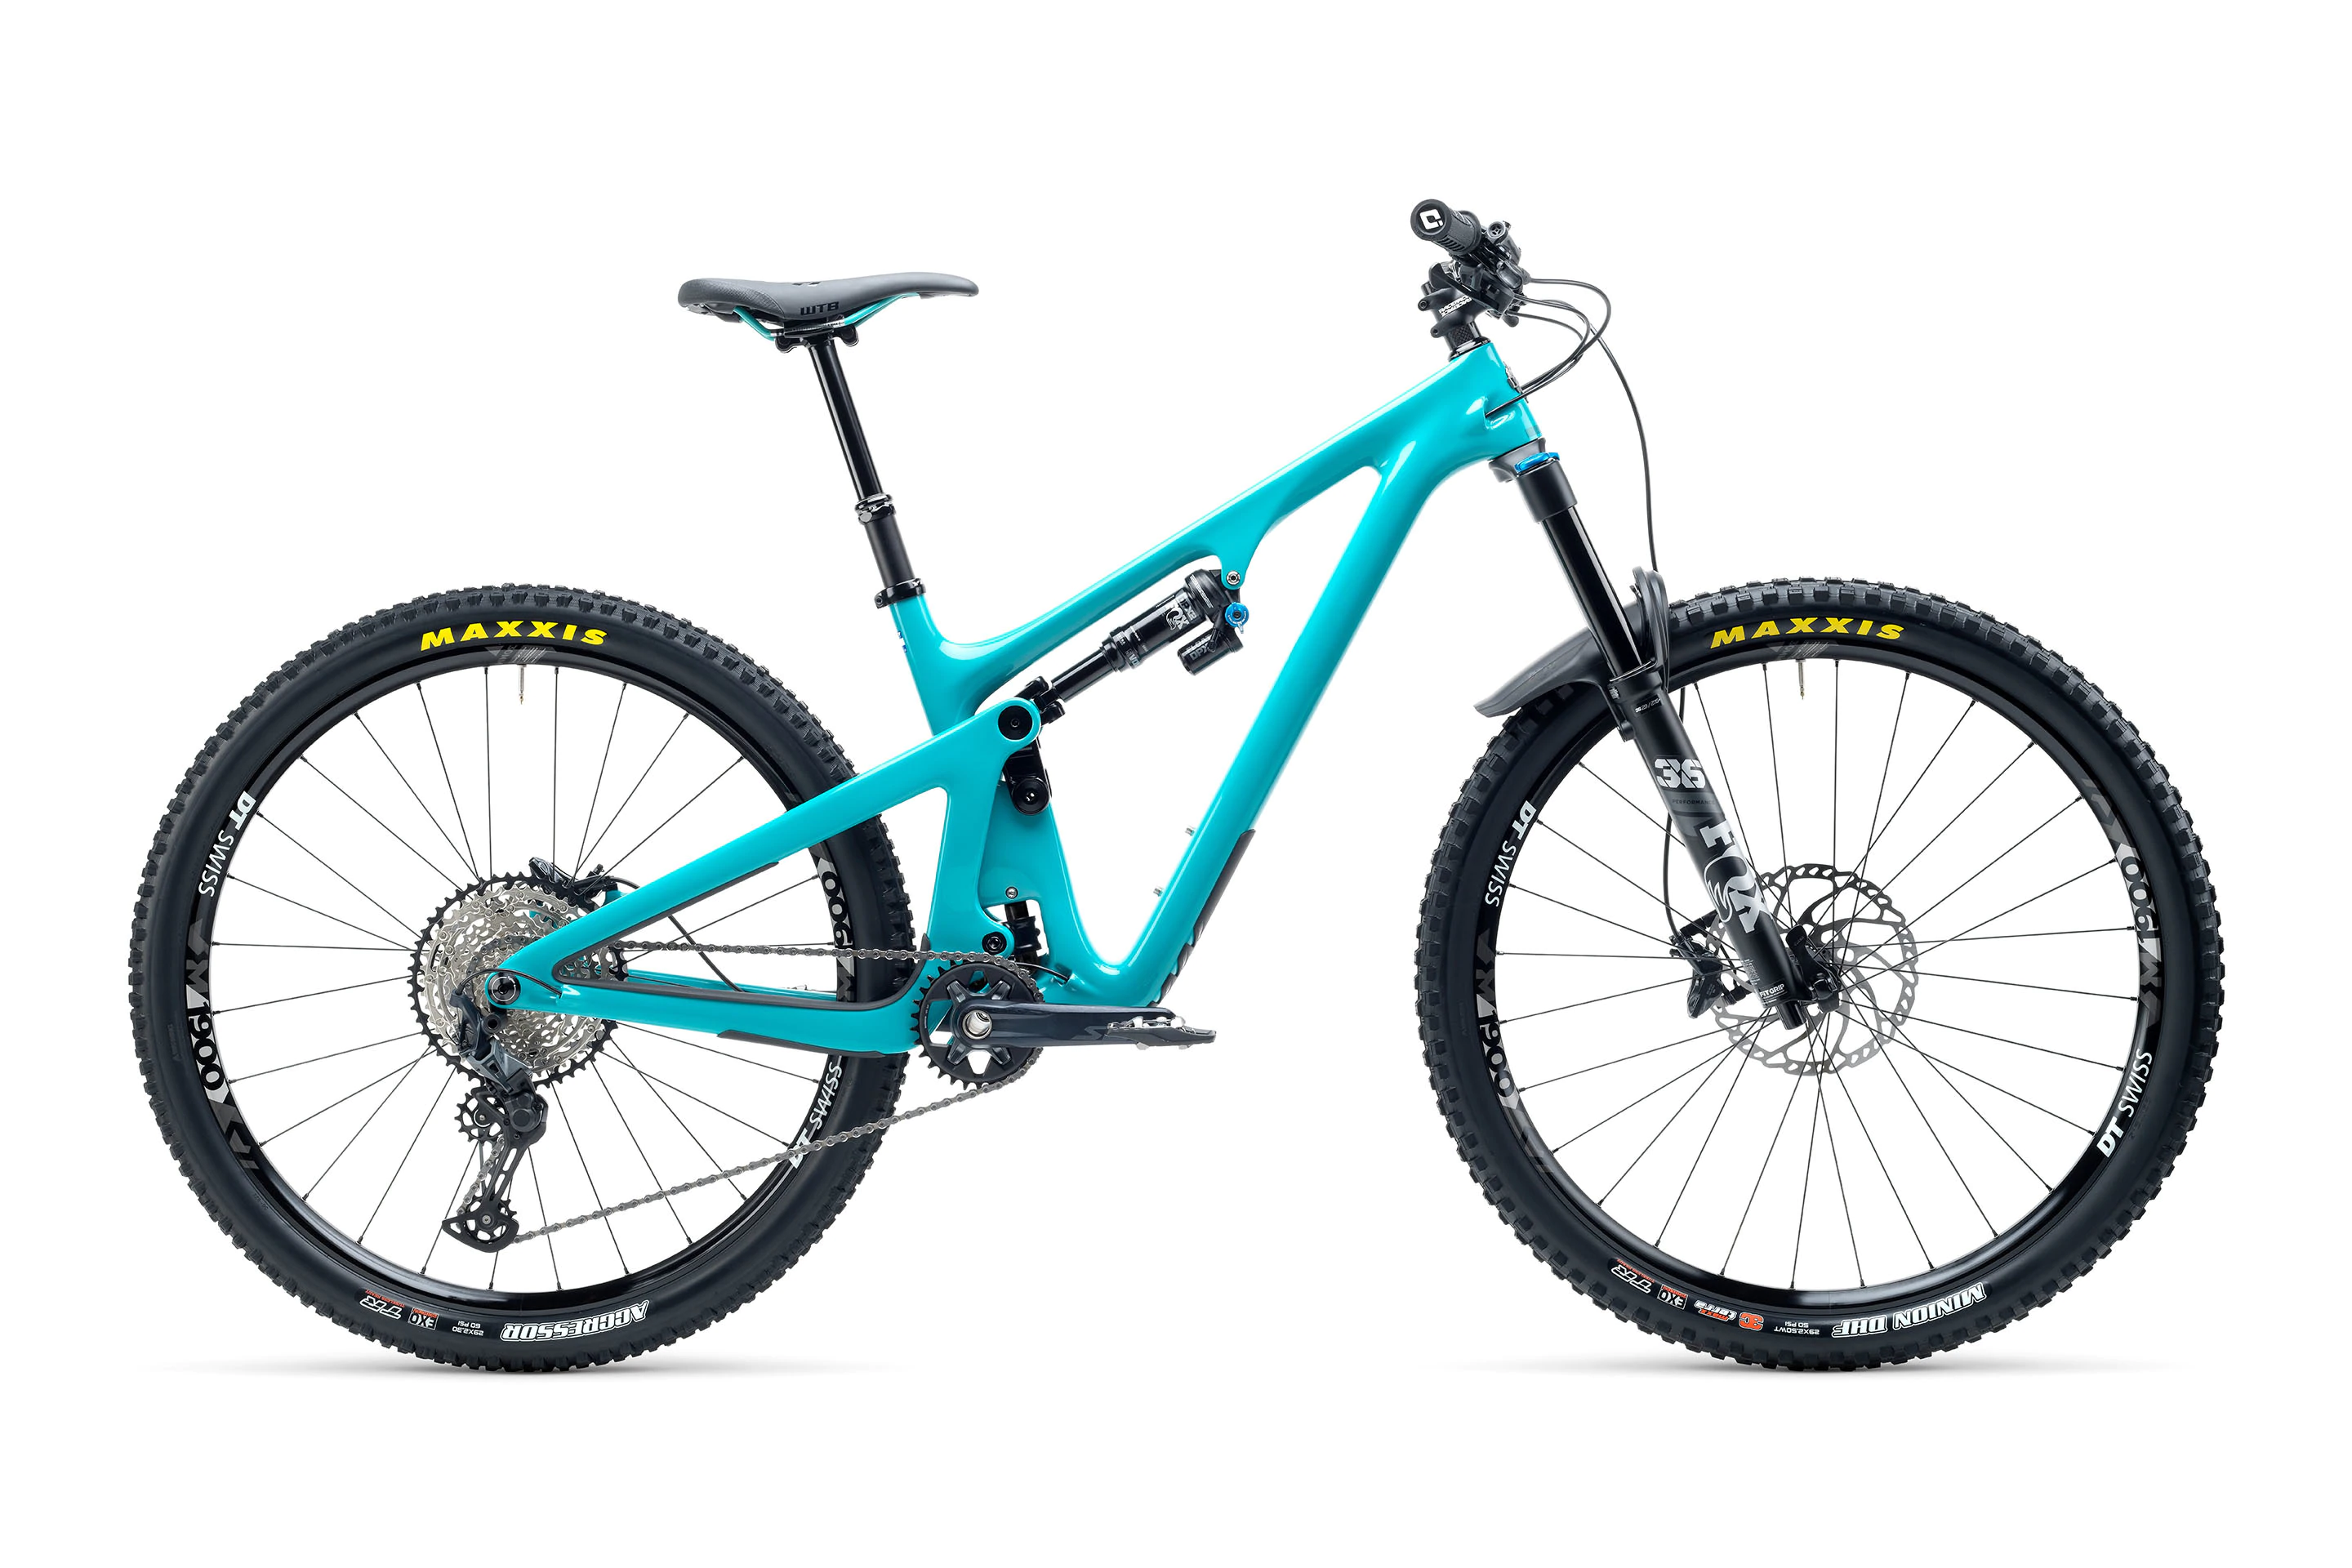 Yeti SB130 C1 Series Shimano SLX 12-Speed Mountain Bike 2021 Turquoise